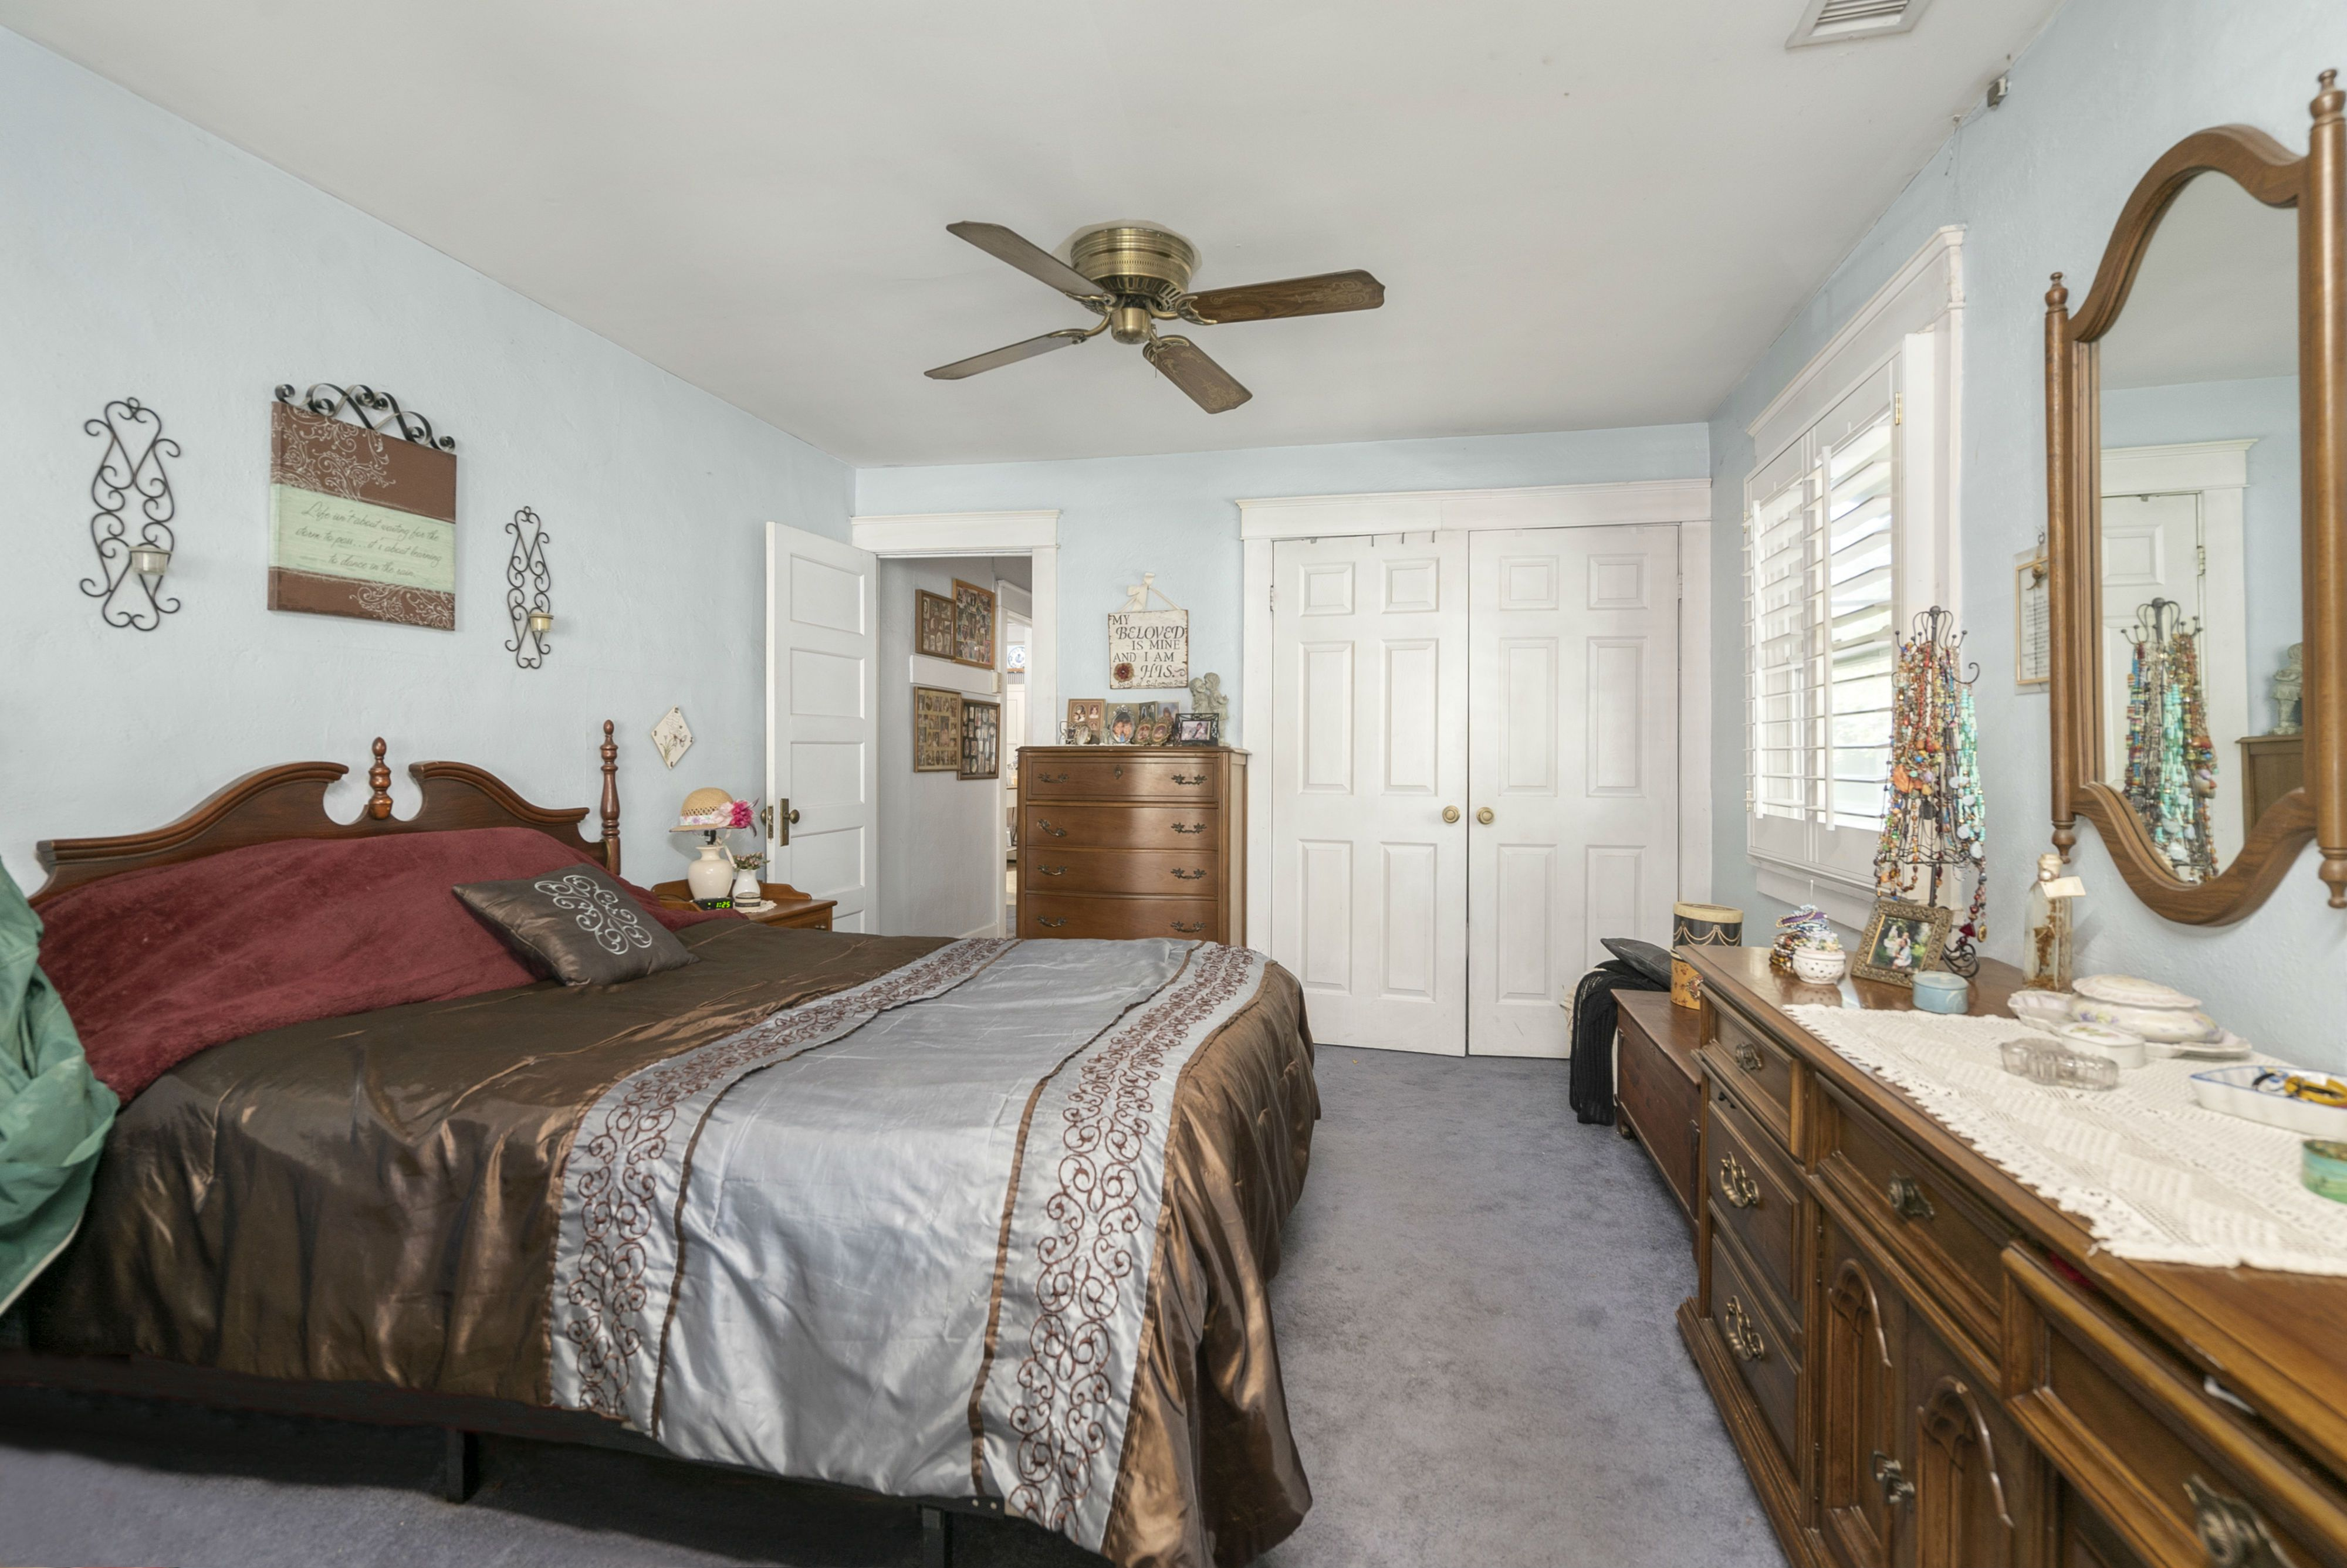 Alternate view of front bedroom with large closet and door to the hallway and remodeled bathroom.